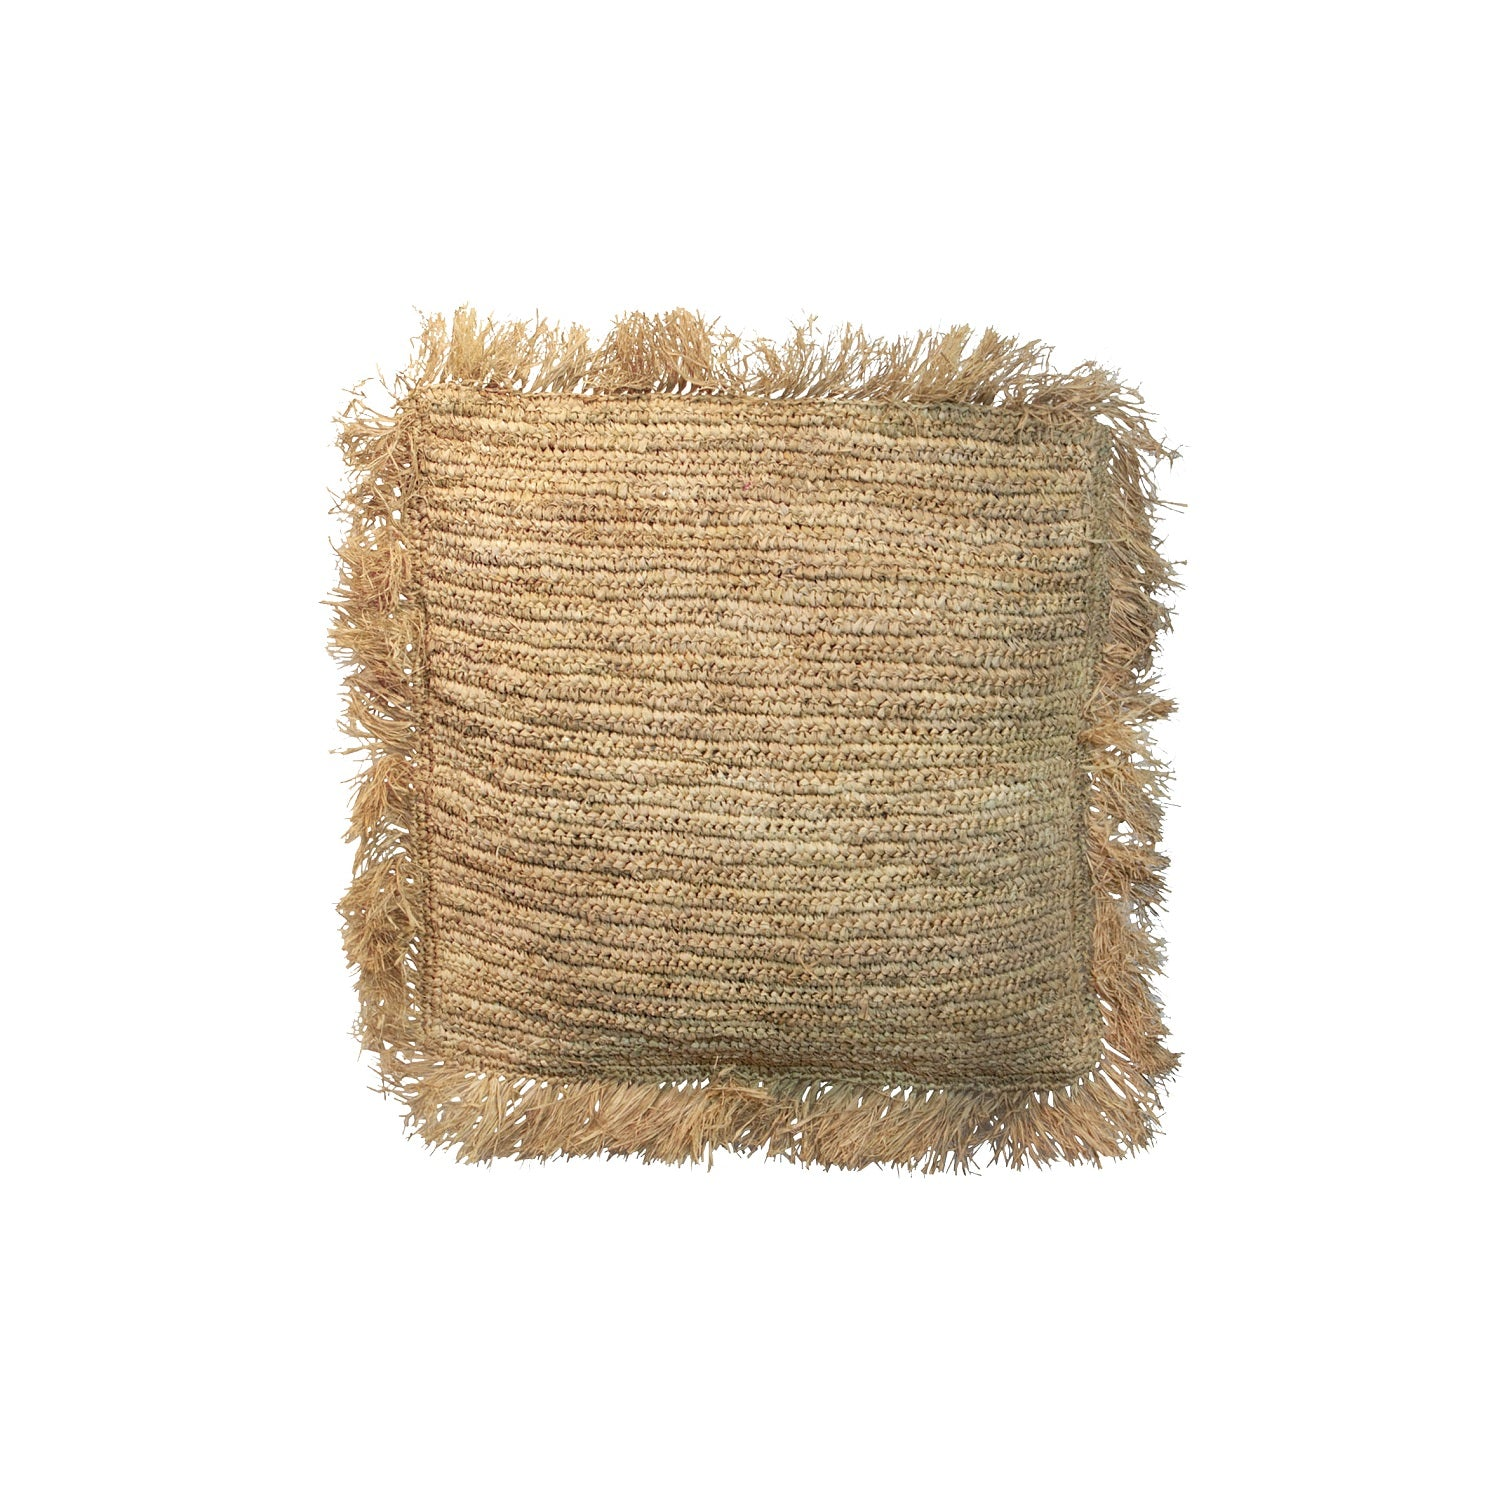 THE RAFFIA CUSHION SQUARE M– NATURAL